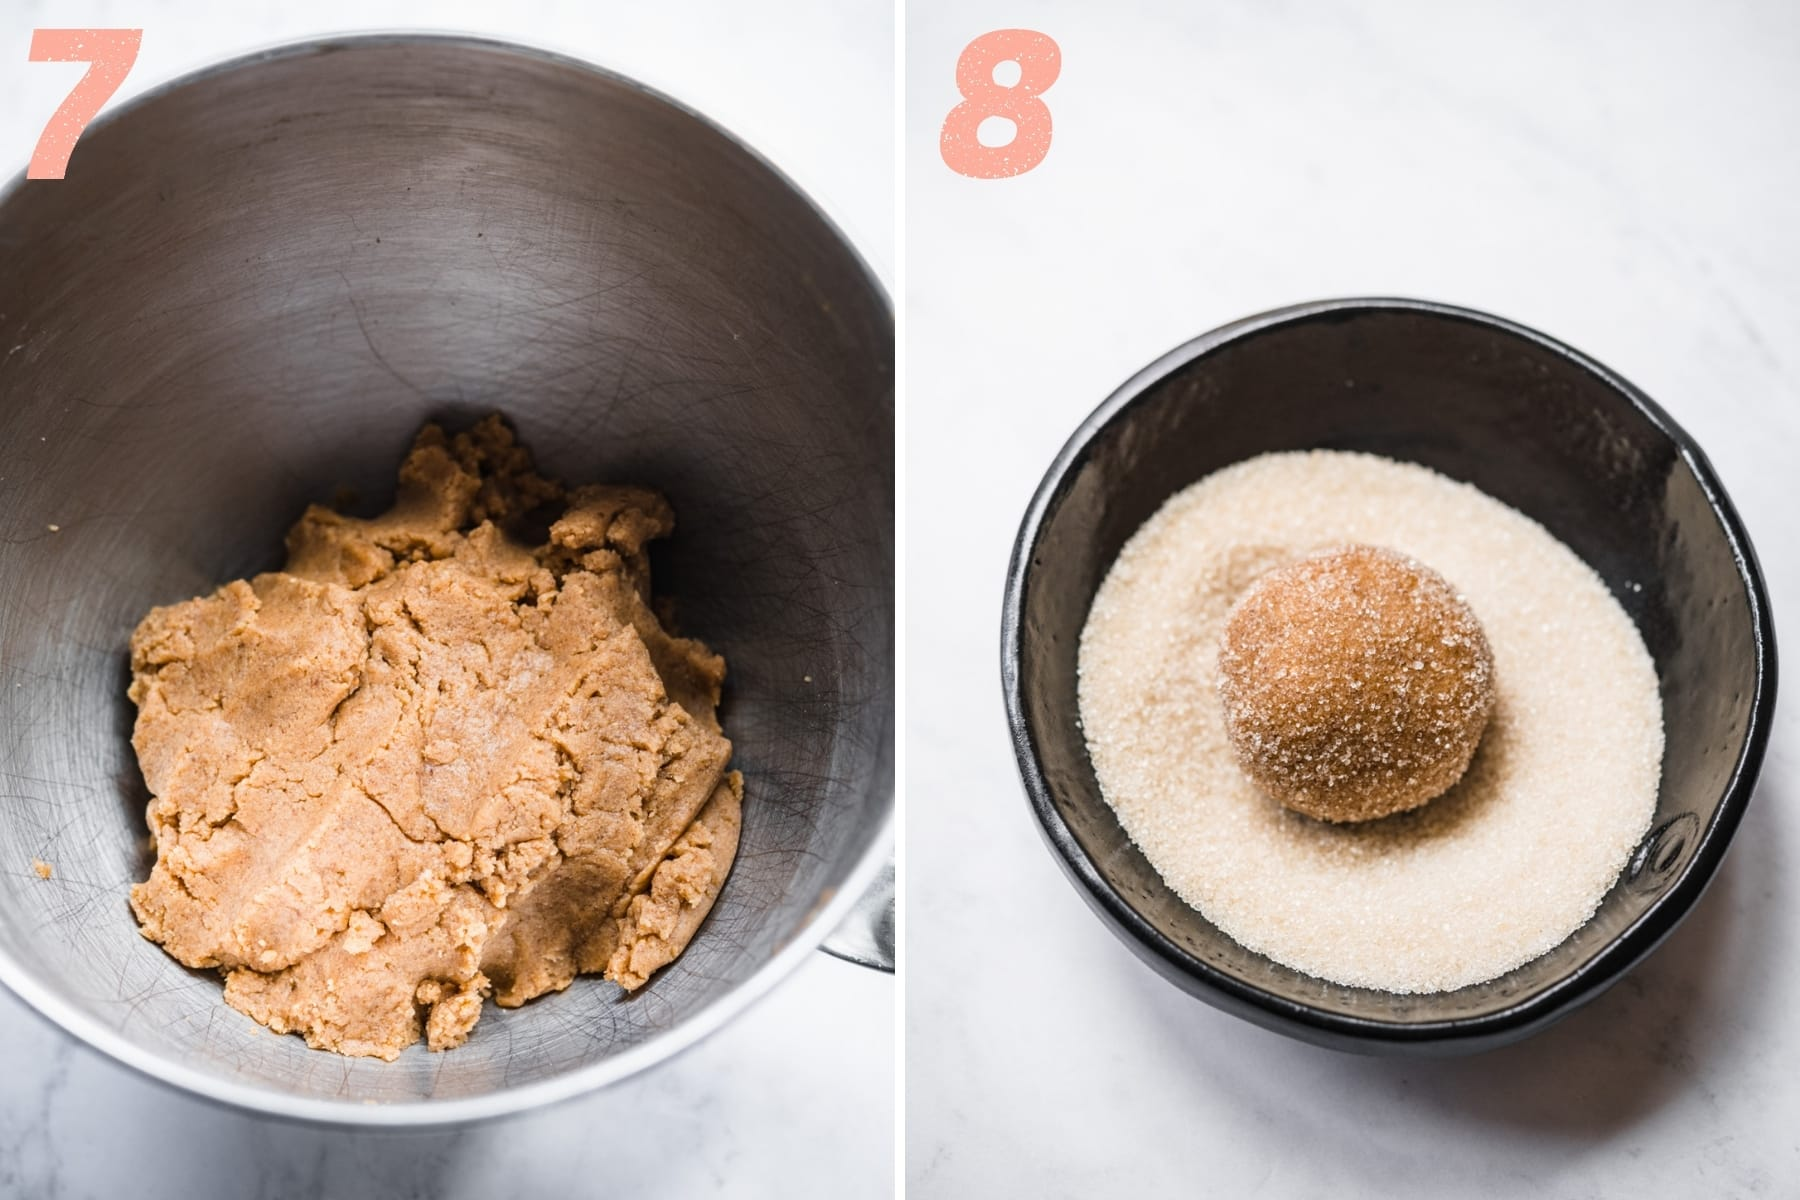 on the left: vegan peanut butter cookie dough in mixing bowl. On the right: peanut butter cookie dough ball coated in sugar before baking.